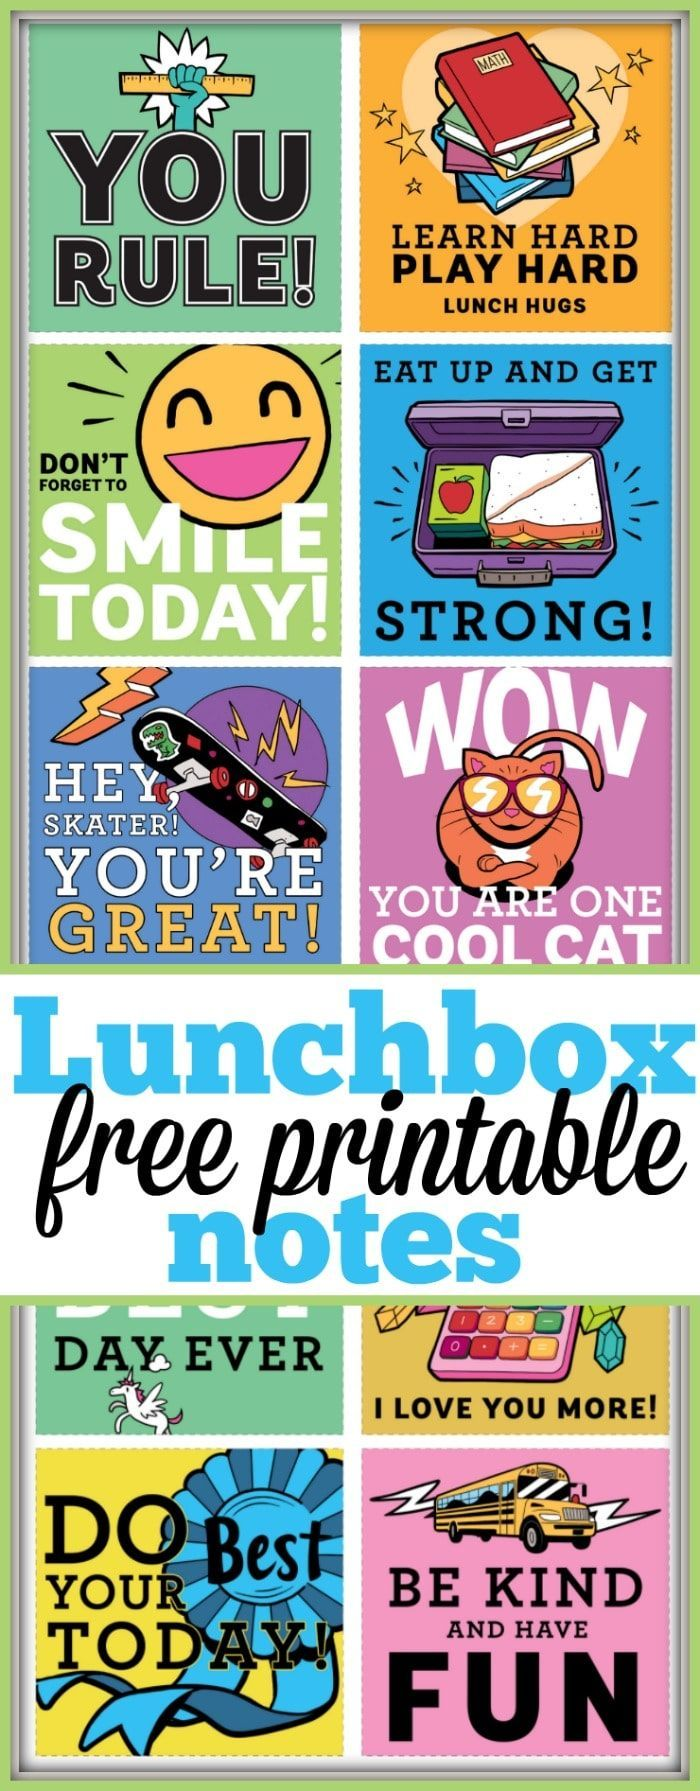 182 best Free Printables images on Pinterest | Free printable, Free ...